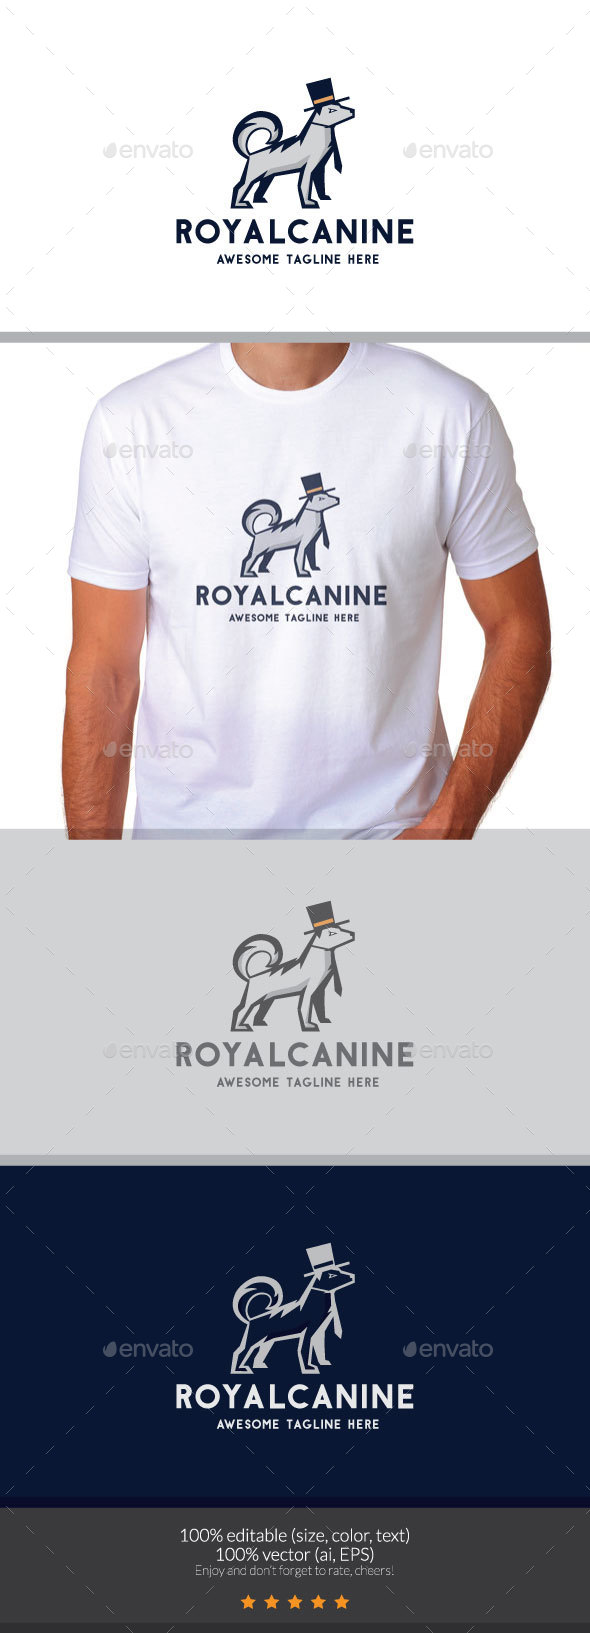 Royal Canine Logo - Animals Logo Templates